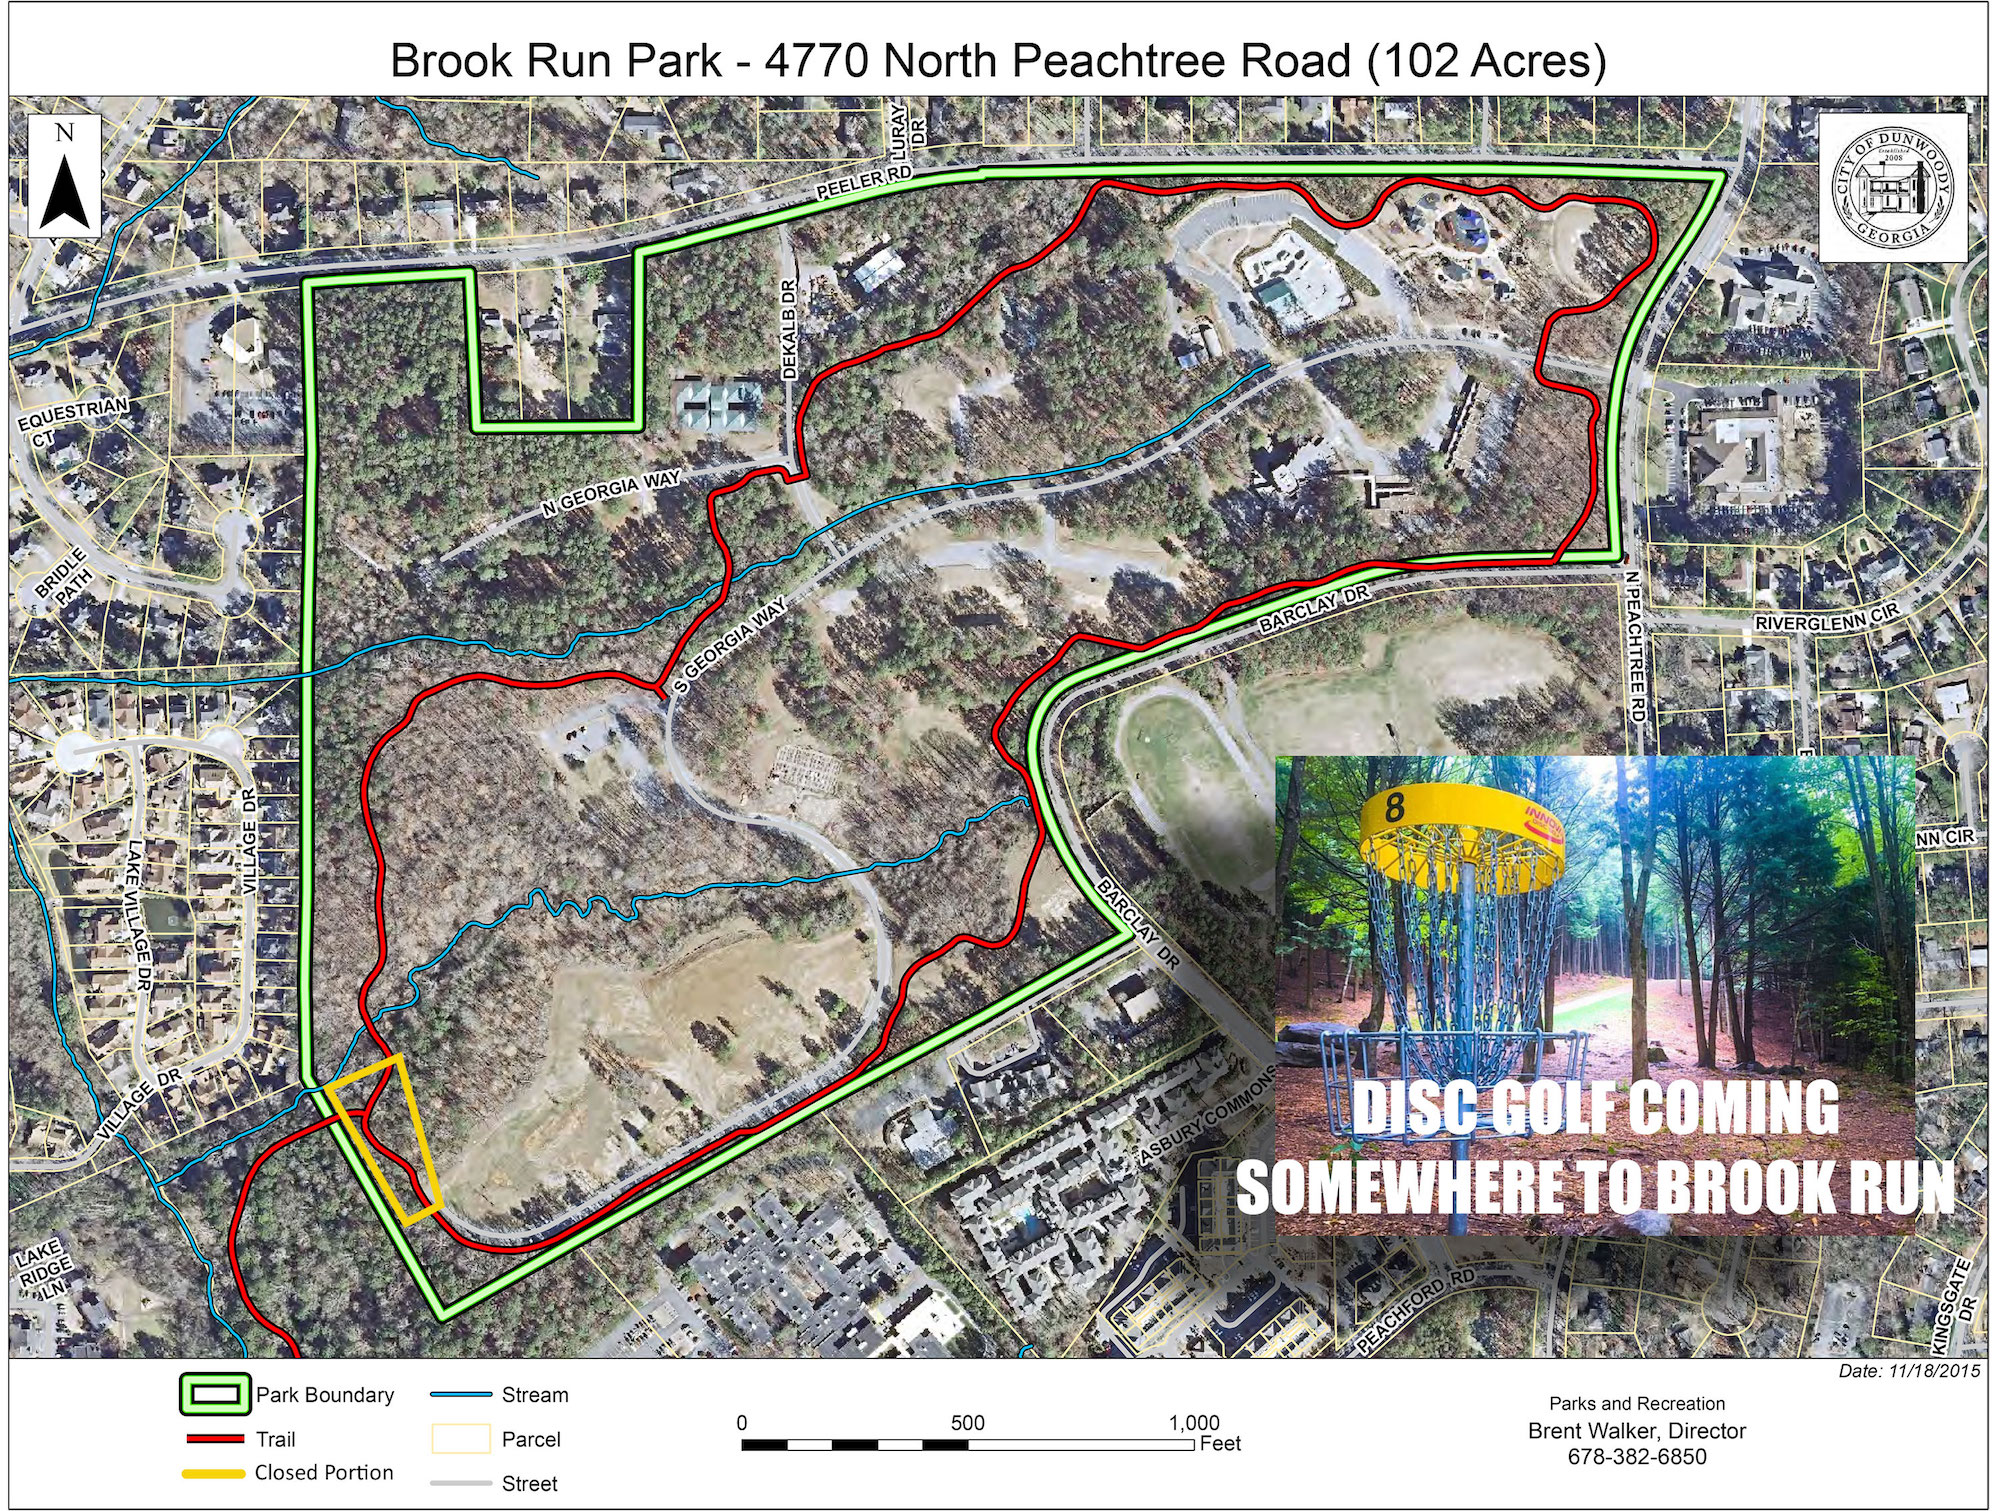 Disc Golf Course Coming to Brook Run Dunwoody